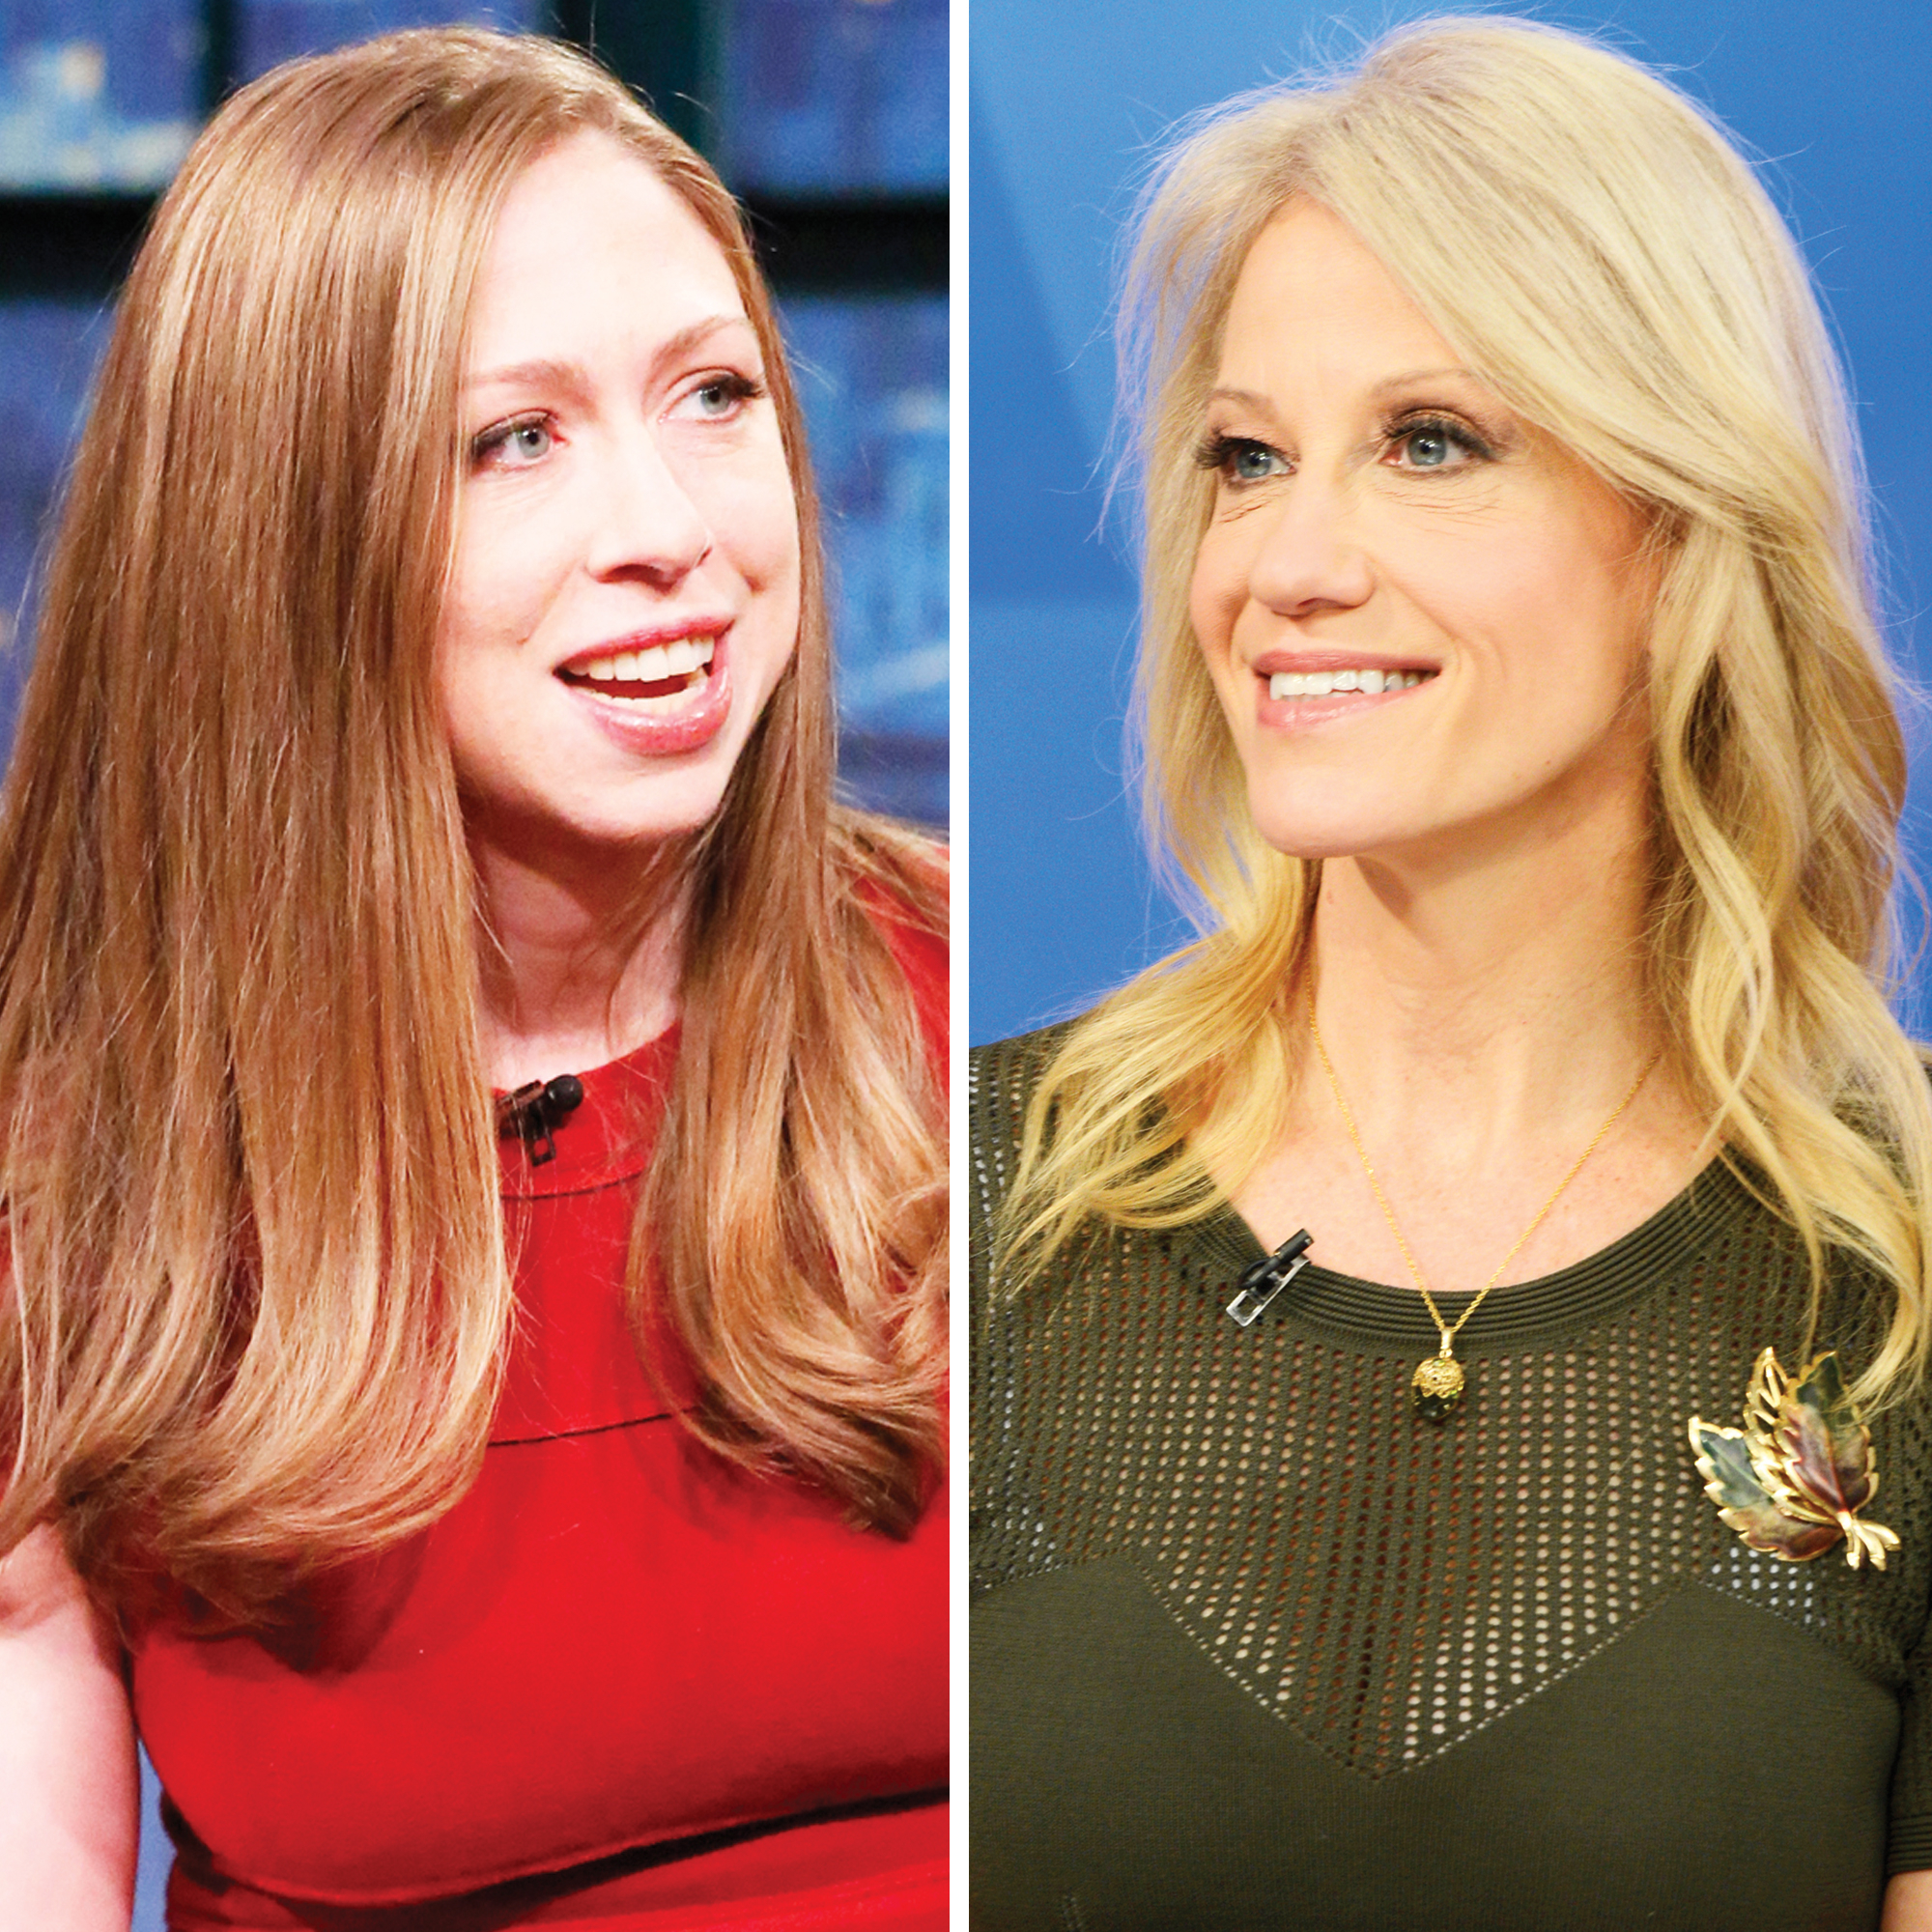 Chelsea Clinton and Kellyanne Conway